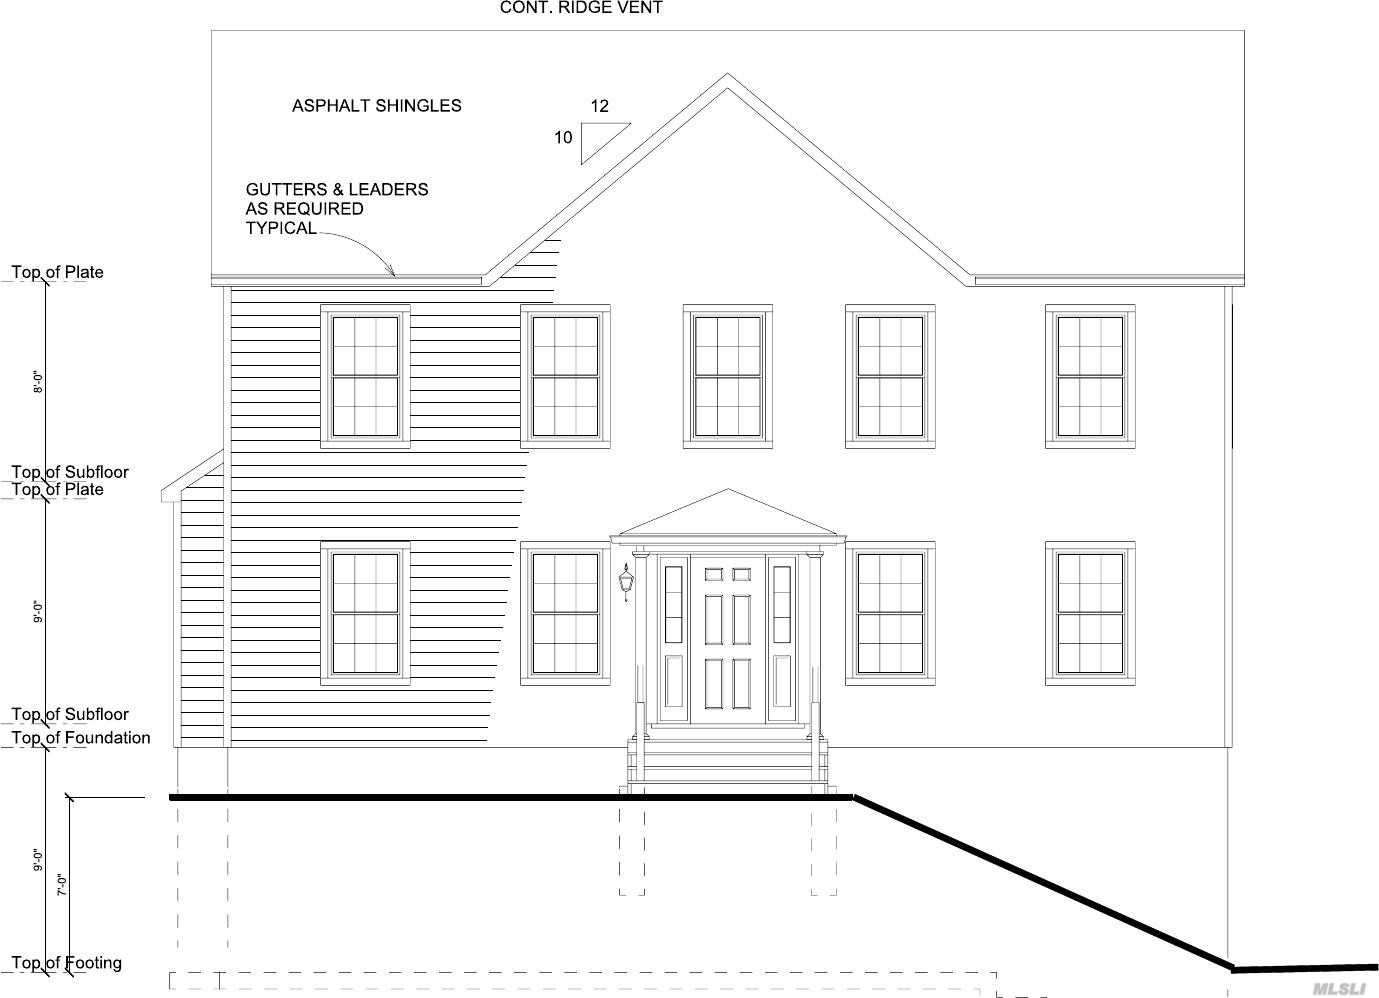 To Be Built. Exquisite 4 Bedroom 2.5 Bath Energy Star Certified New Construction In Sound Beach- Miller Place Schools. 2 Car Garage In Basement. Large Eat-In-Kitchen W/ Center Island & $1000 Credit For Appliances. Gas Fireplace In Den. 60'X80' French Doors Between Lr & Den. Oak Hardwood Floors, 9 Ft Ceilings In Main Floor & Basement. Laundry Room On Top Floor, Master Suite W/ Walk-In-Closet & Full Bathroom. Energy Efficient 2-Zone Natural Gas Heating & Cac. Maintenance Free Exterior.